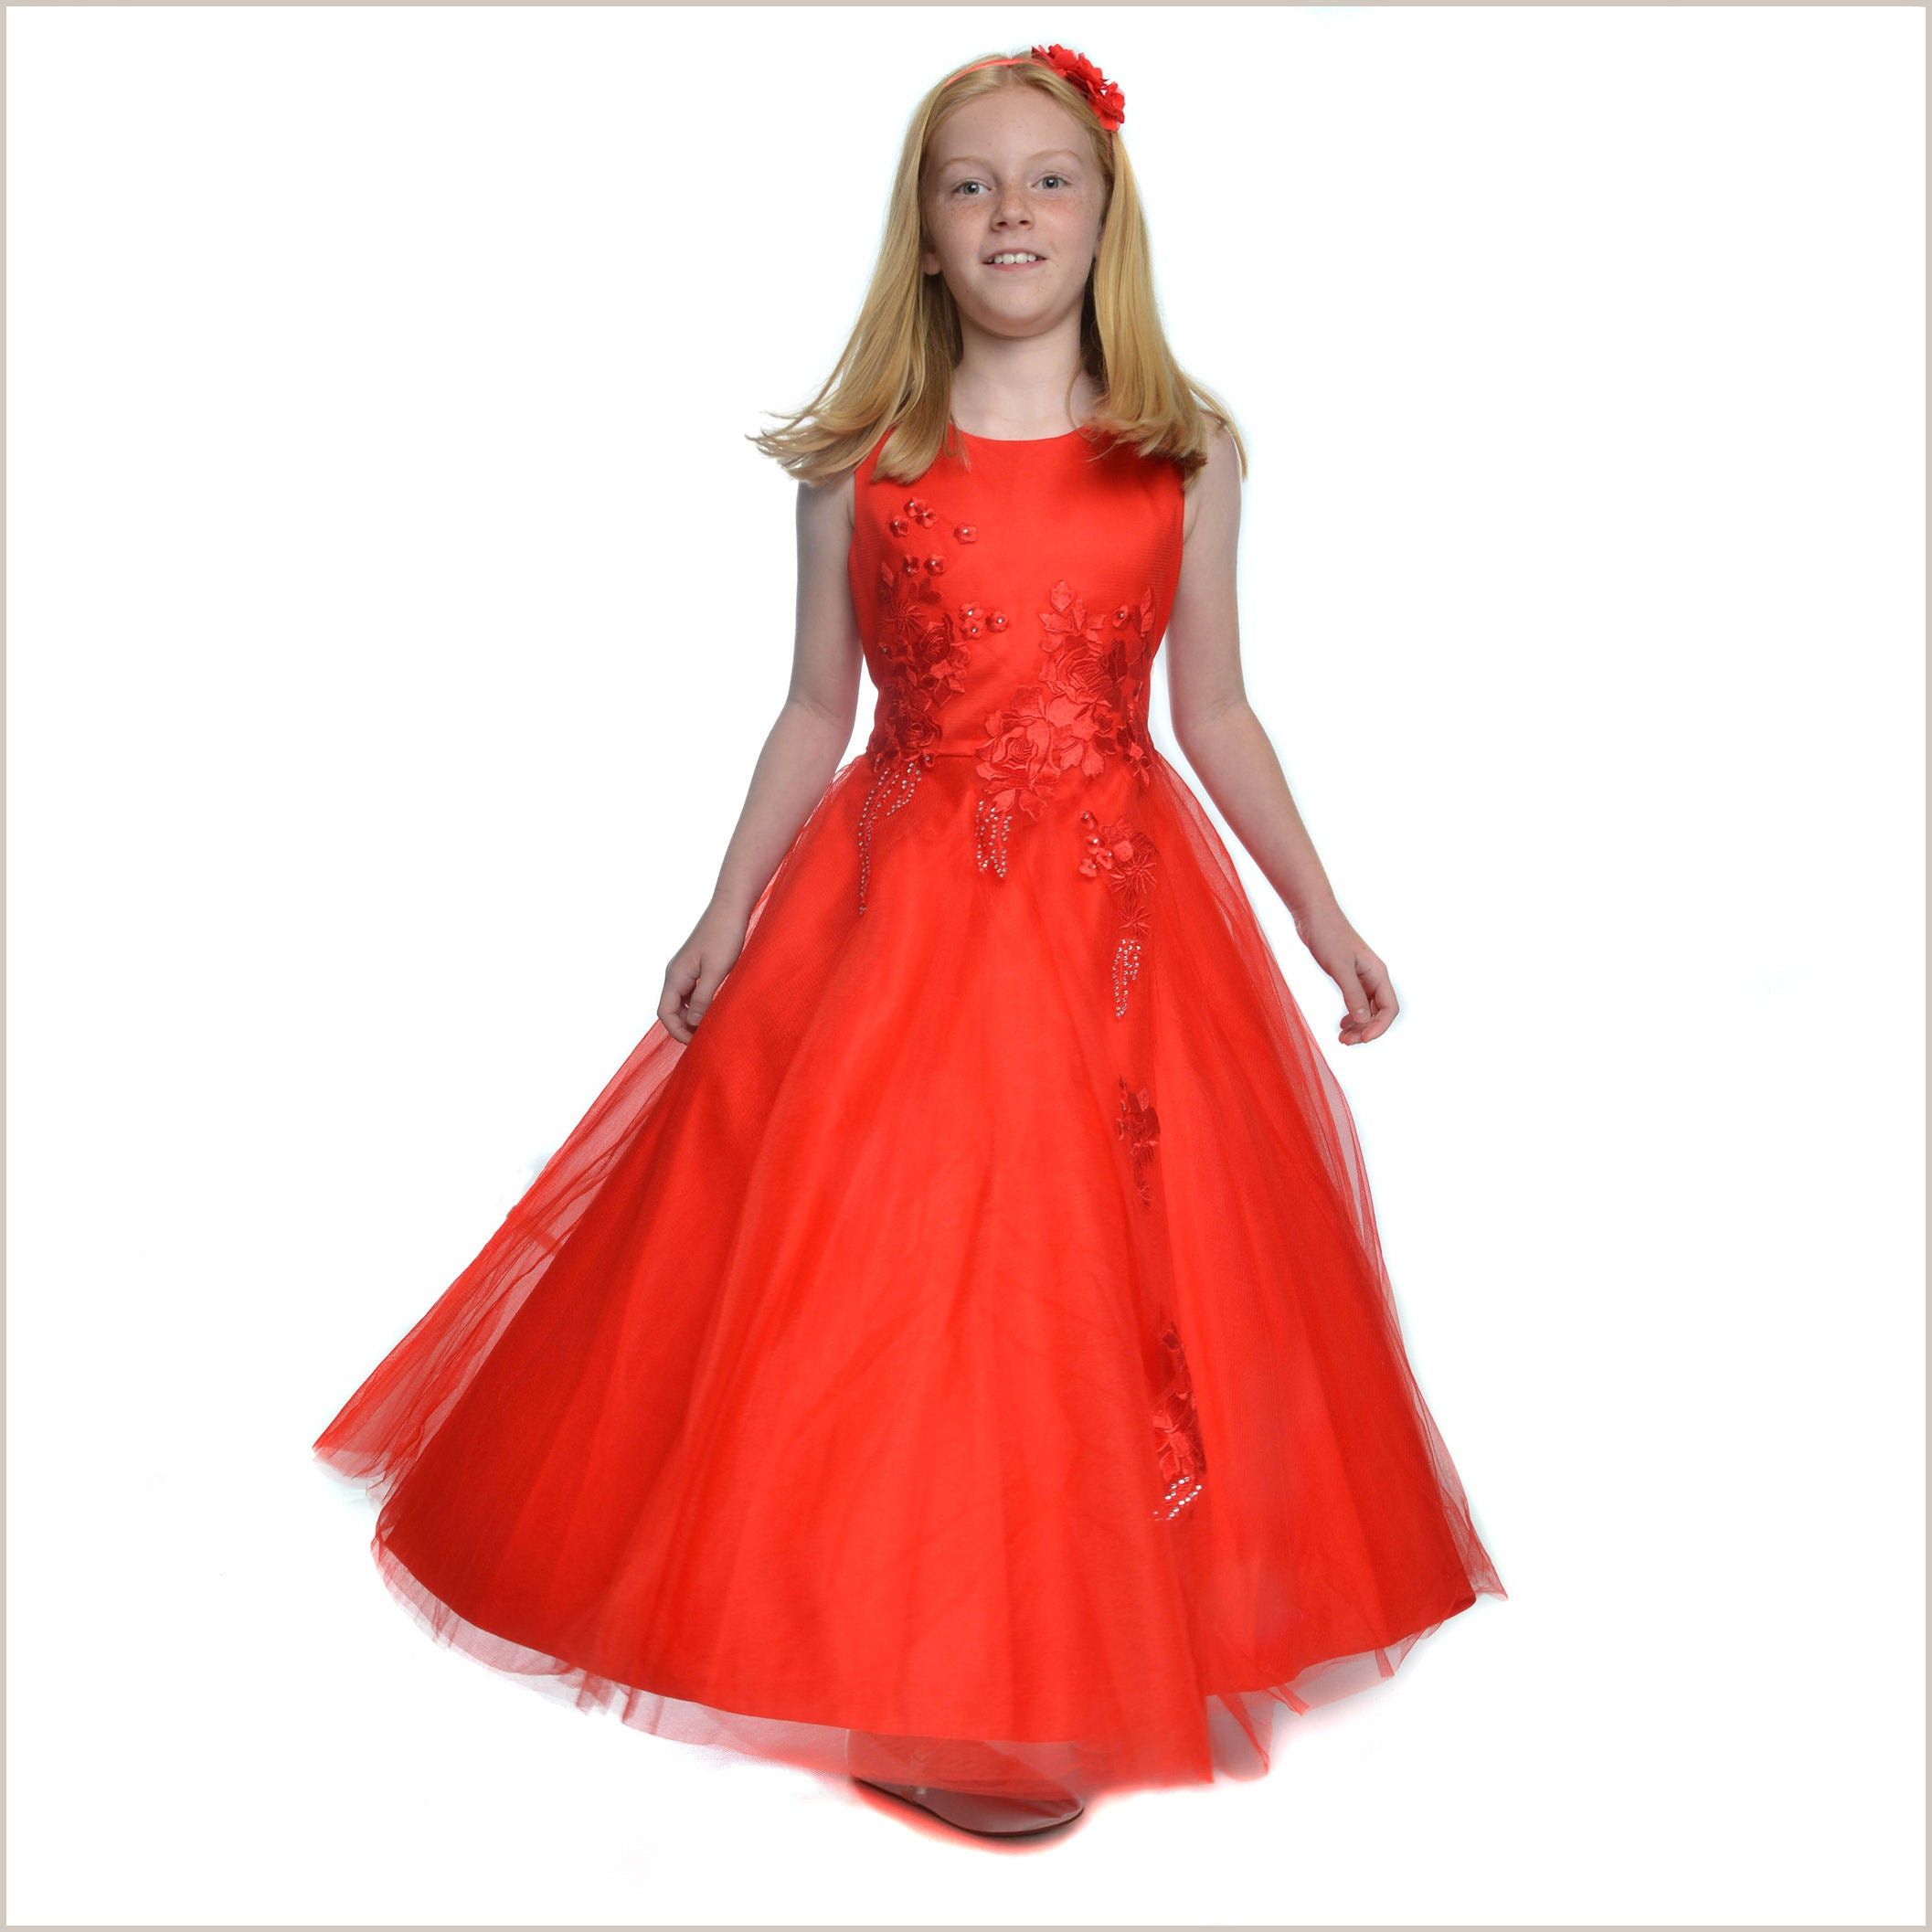 Childrens Red Bridesmaid Shoes